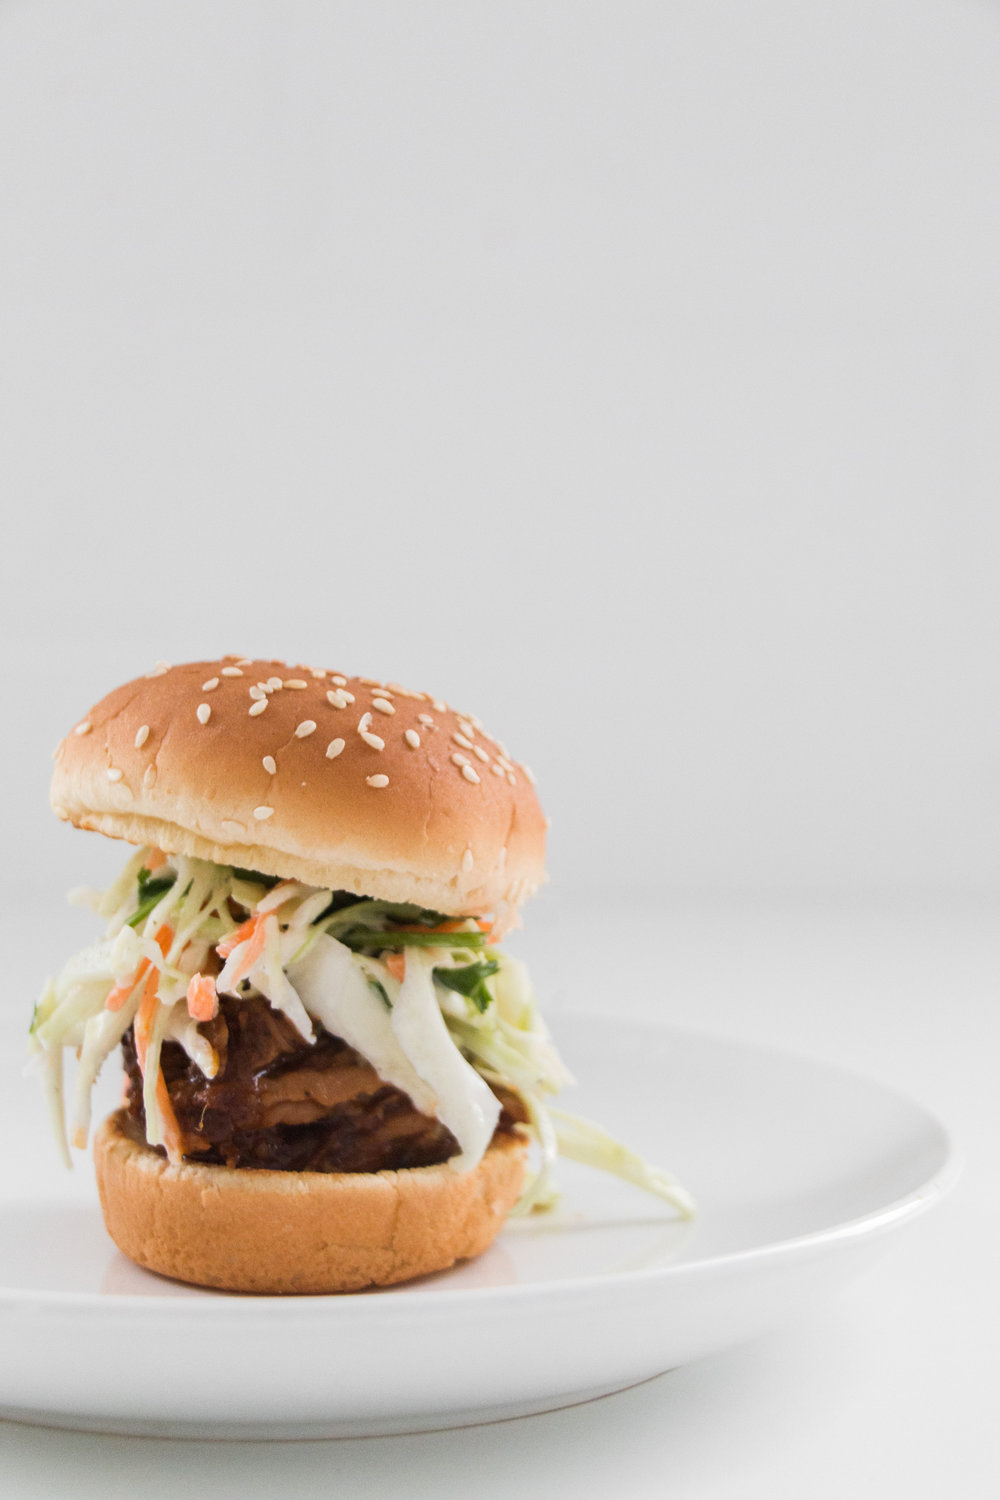 Chipotle Bbq Pulled Pork Sliders with Cilantro Slaw